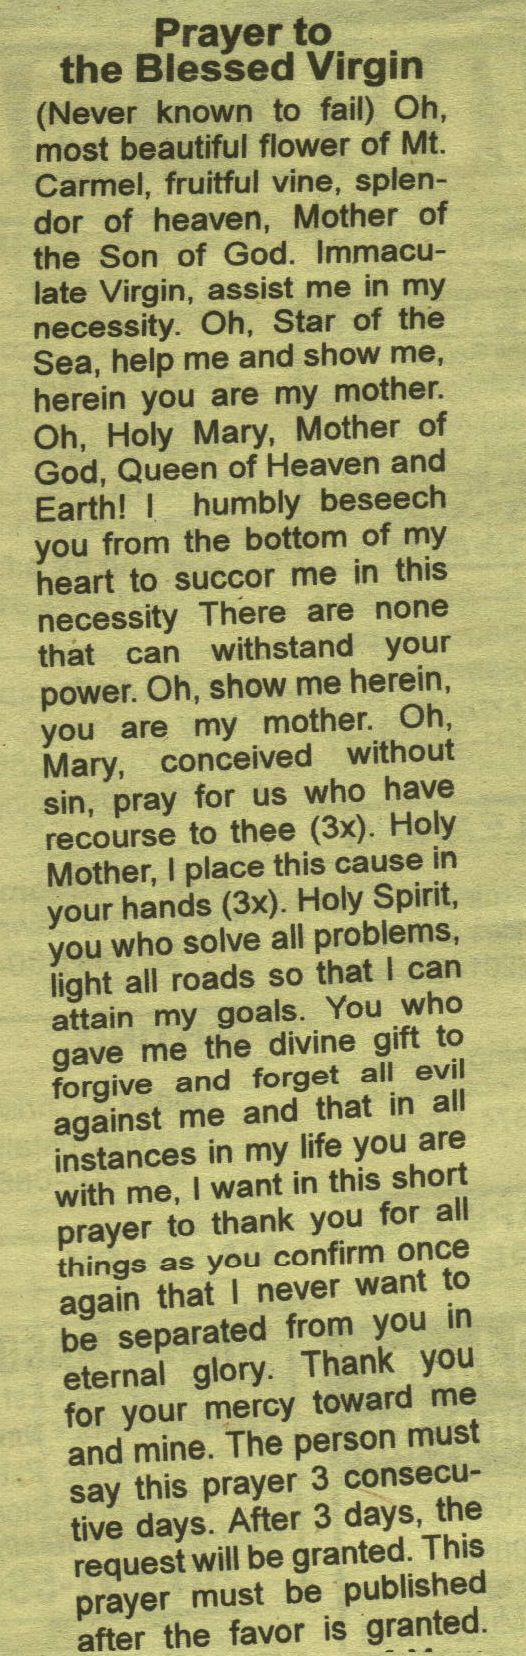 Prayer to the Blessed Virgin (Never Known To Fail)